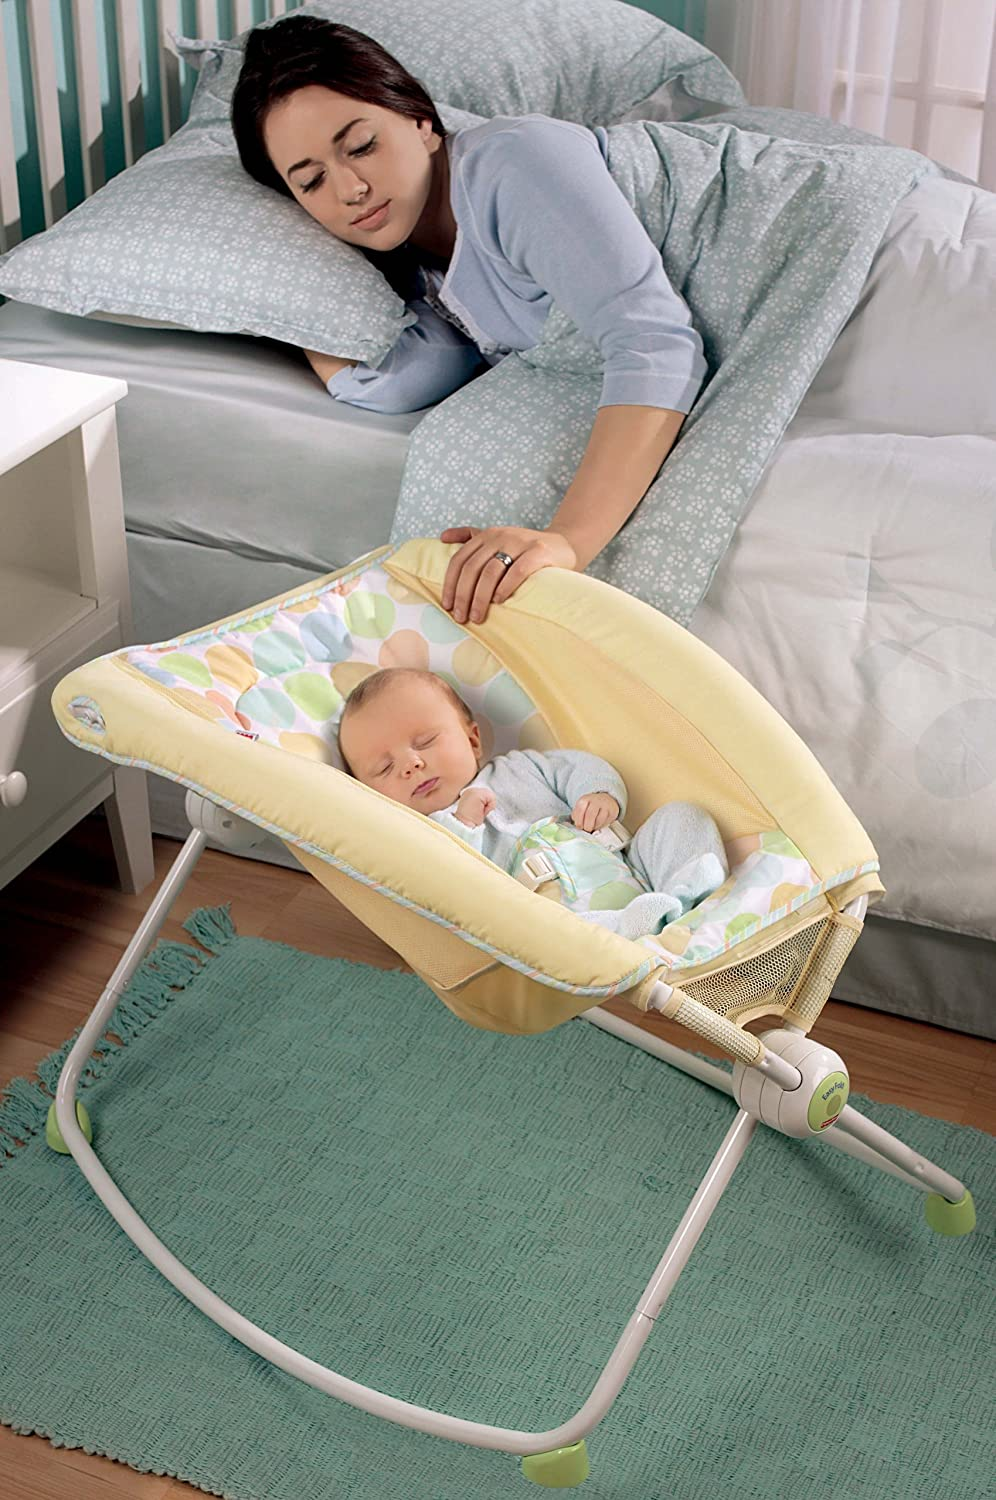 rock price reviews fisher and play sleeper auto safety n nutritionist dsc the review